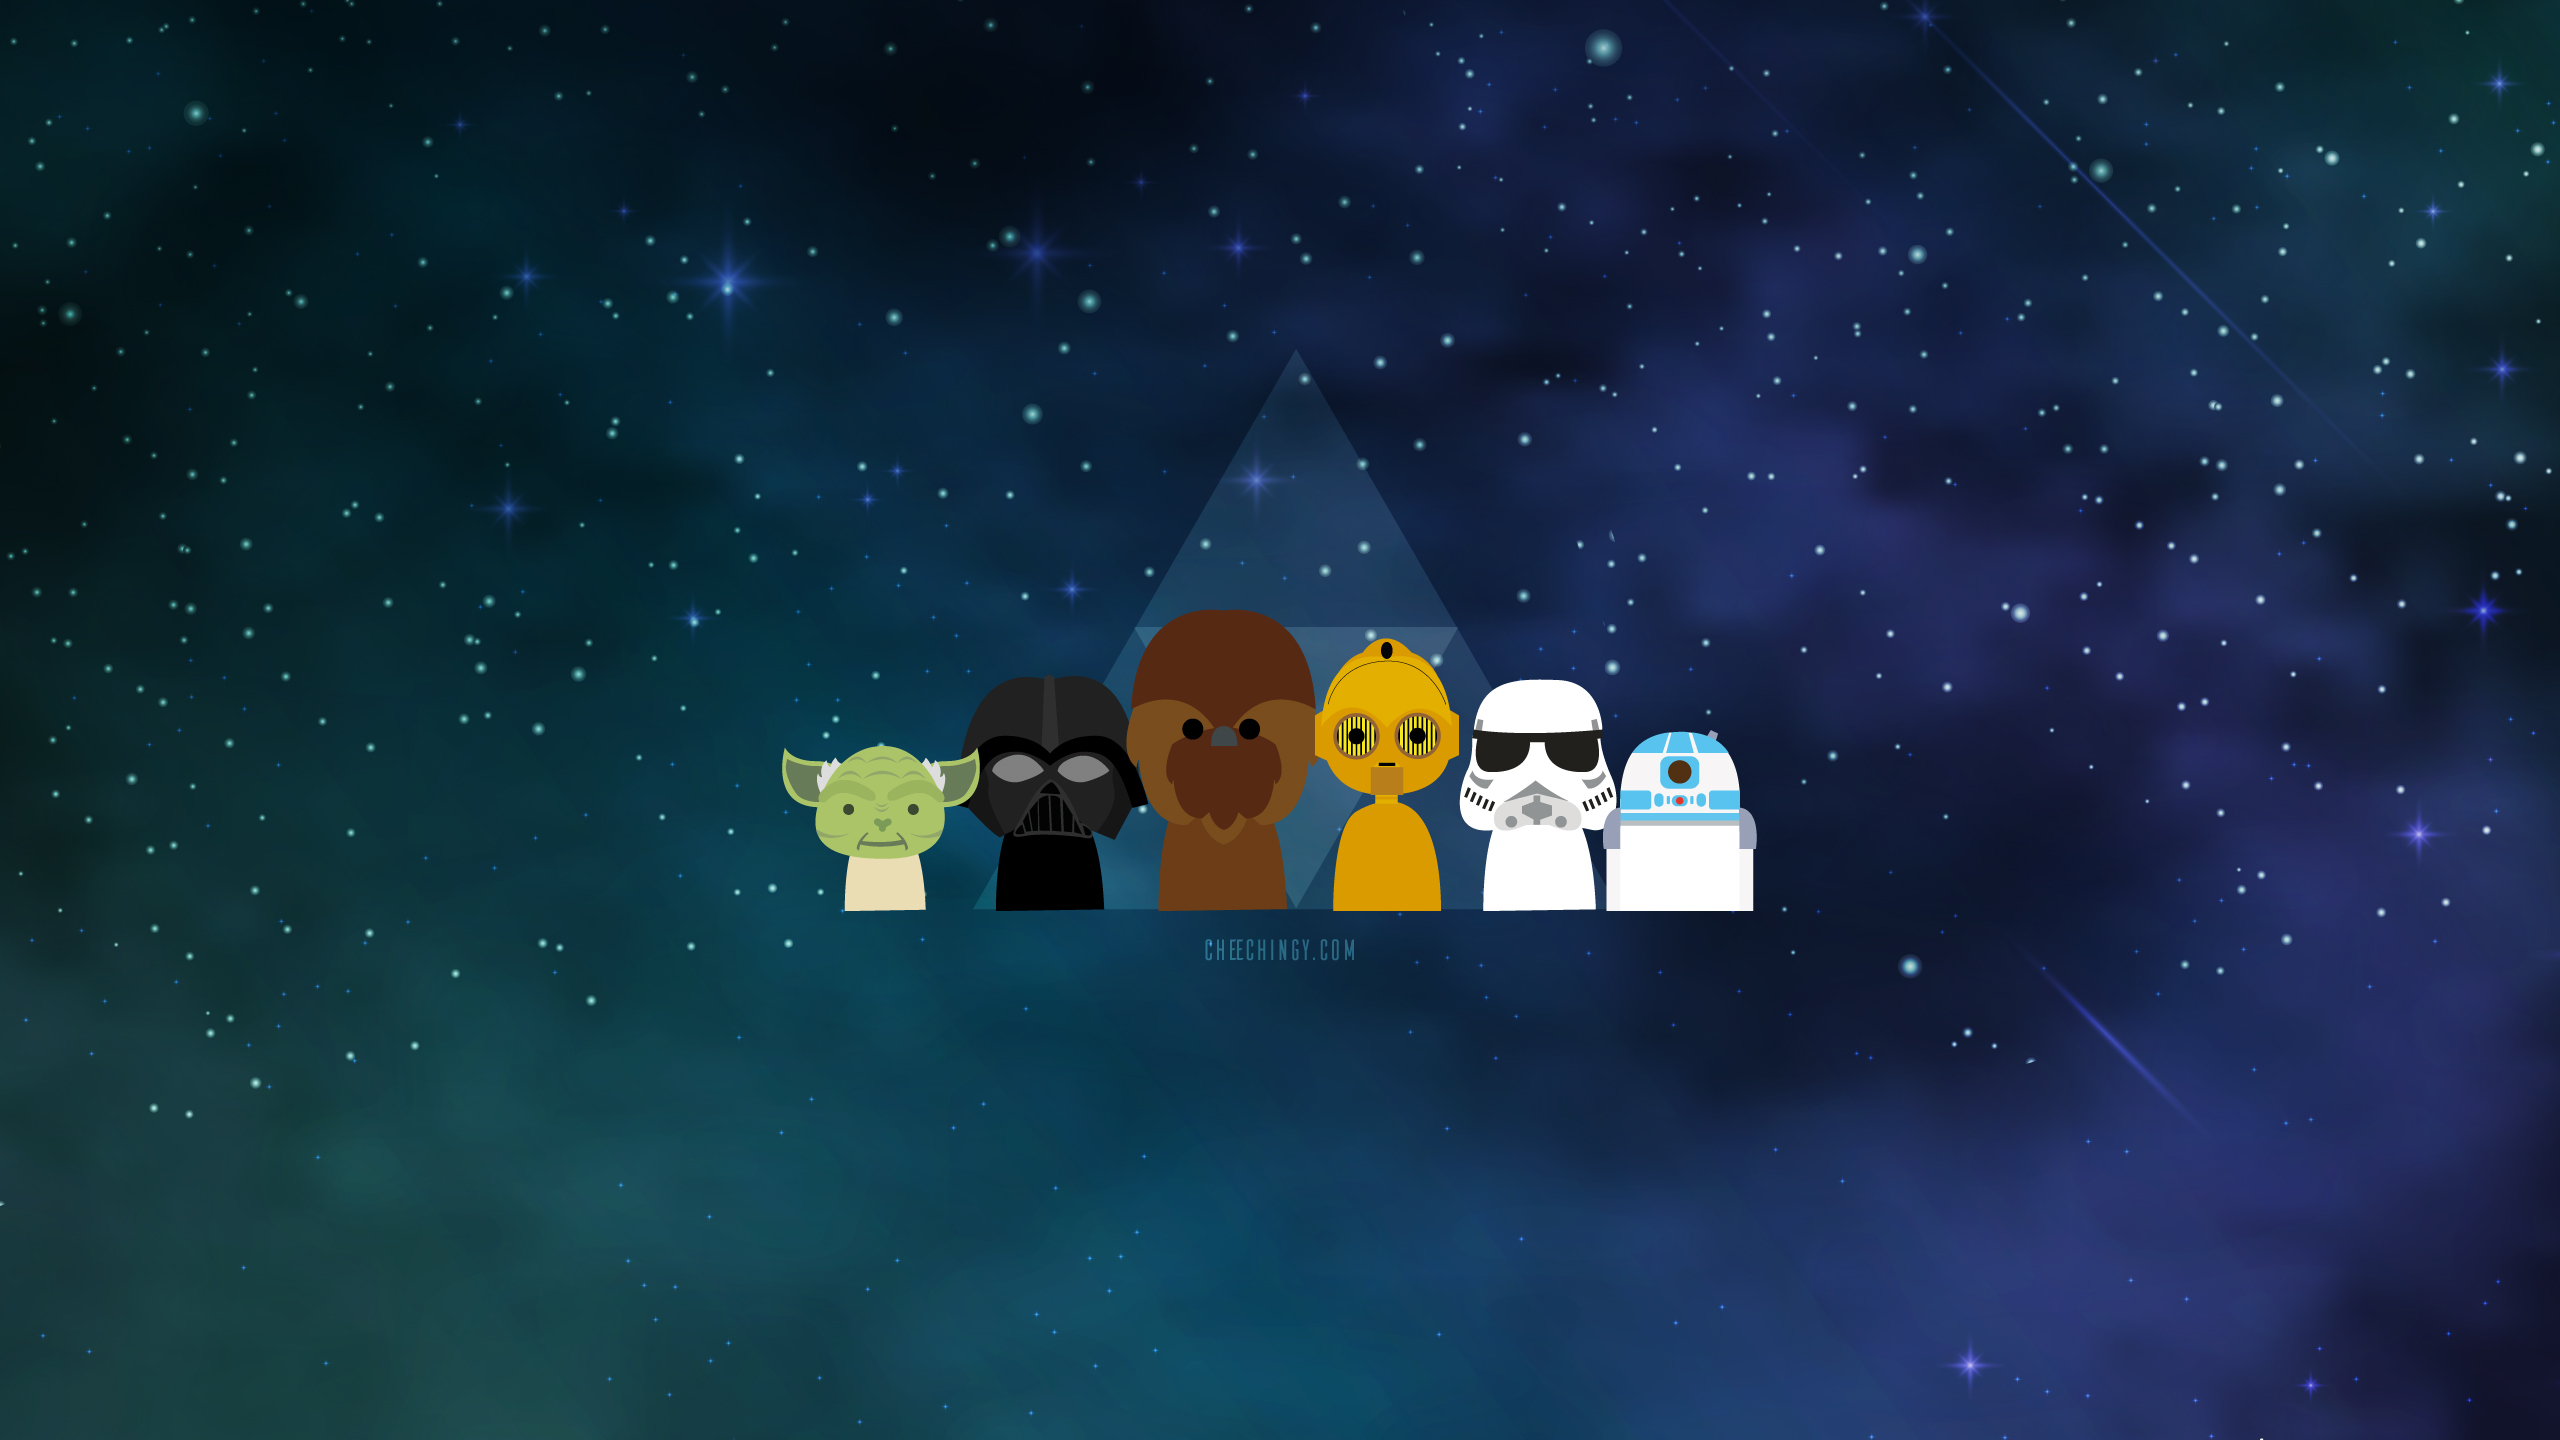 #illustration #wallpaper The Star Wars Chibi Alliance